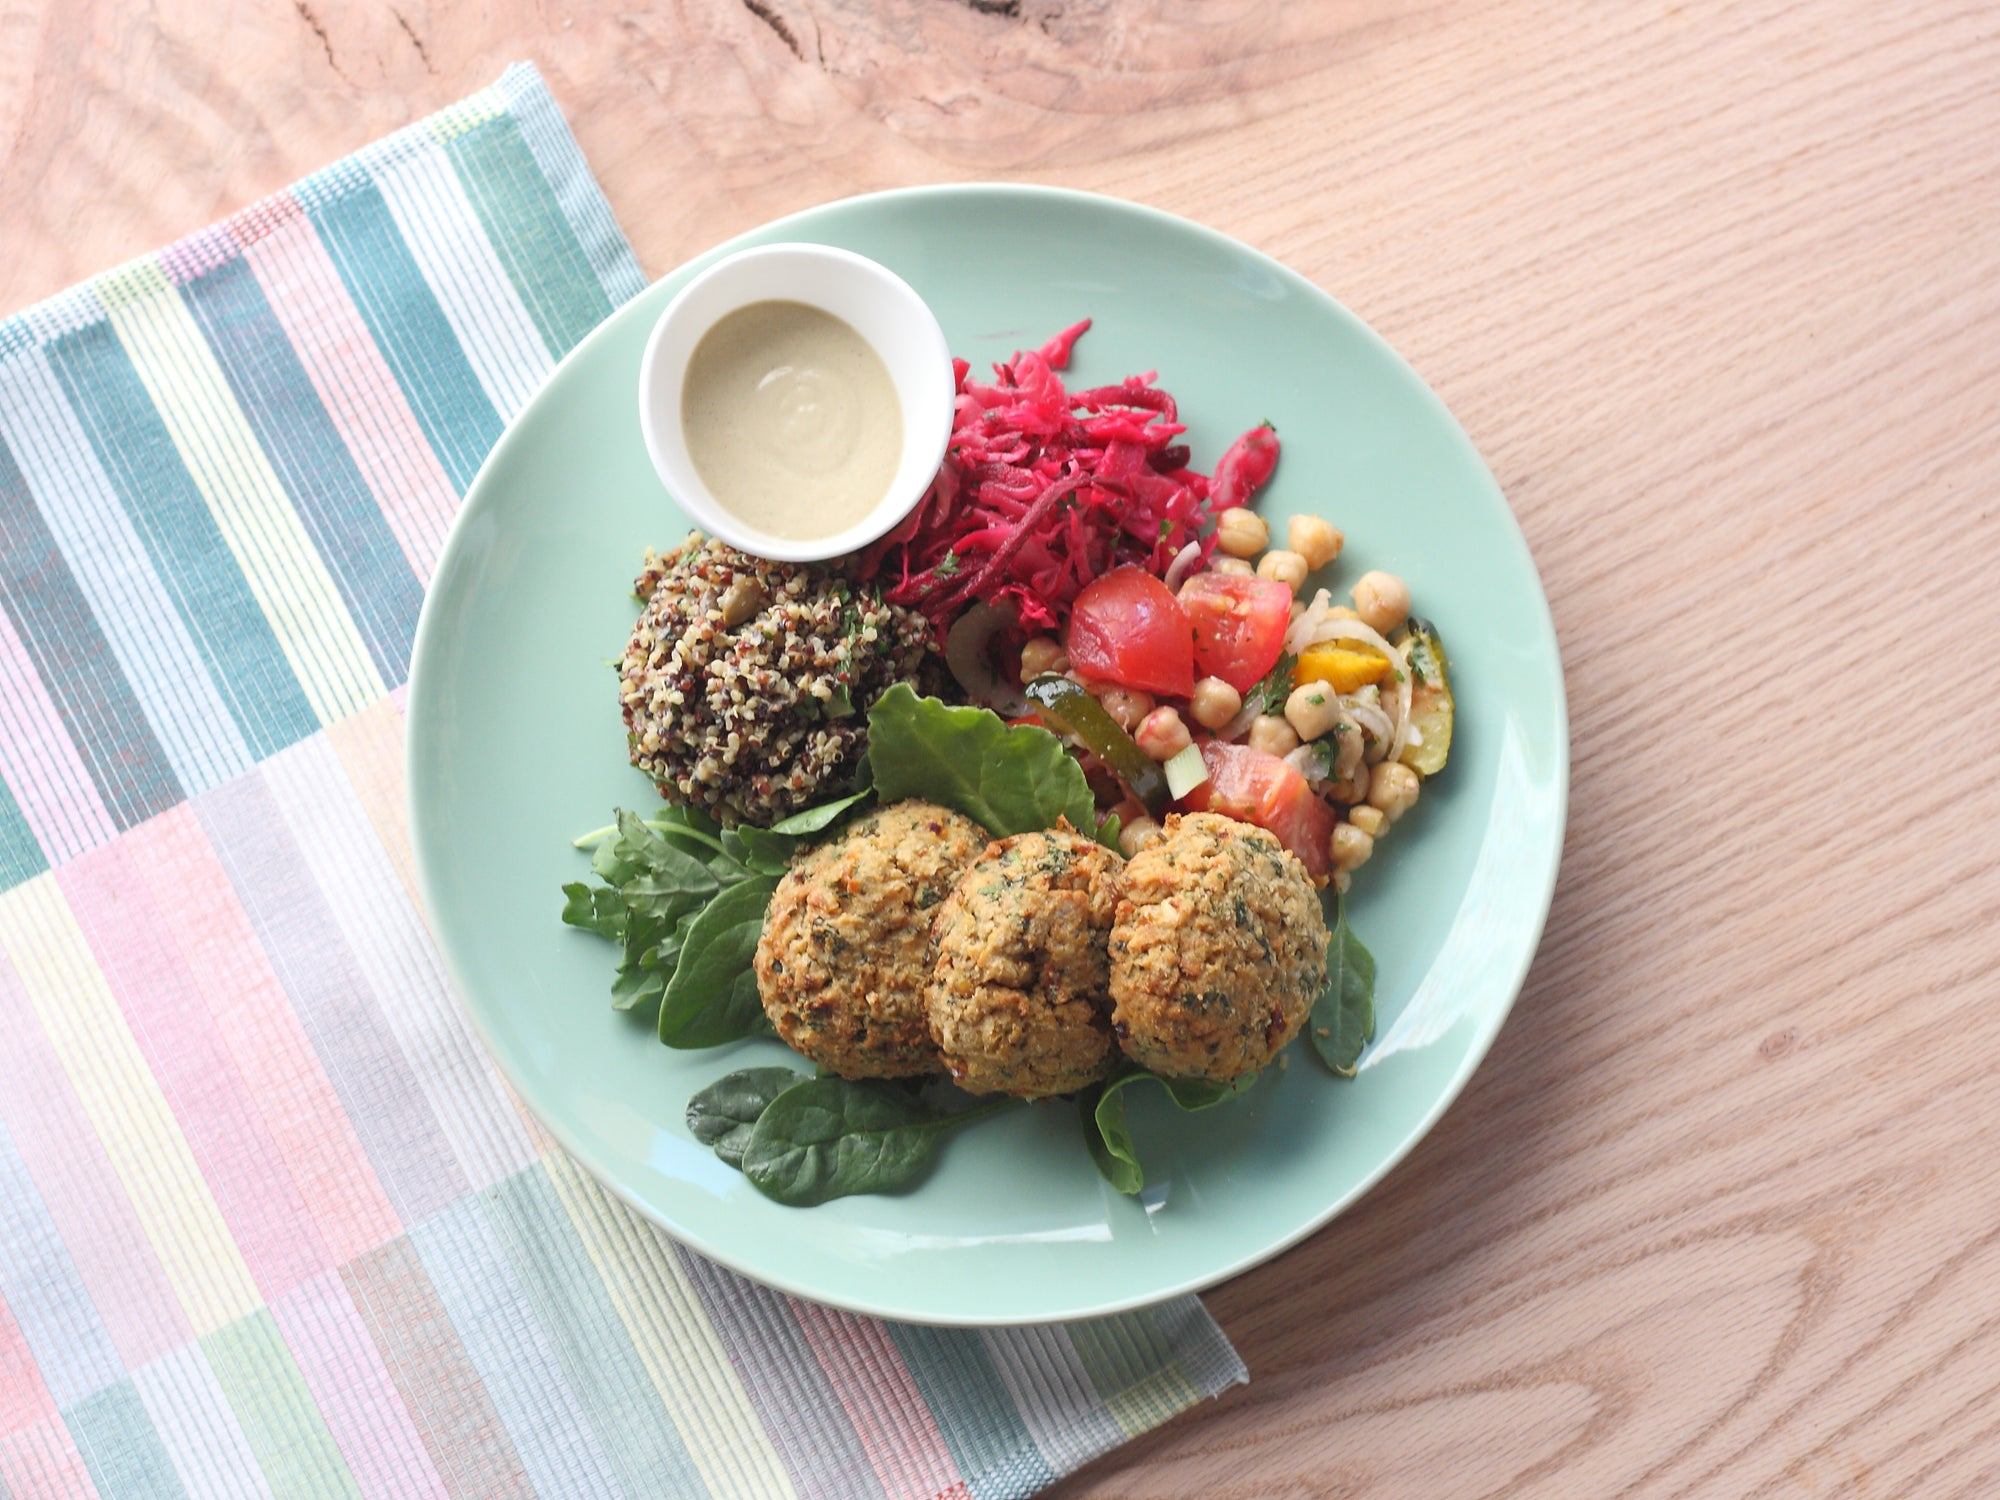 Falafel Platter with Herbed Quinoa Couscous, Local Marinated Veggies, and Aphrodite Dressing